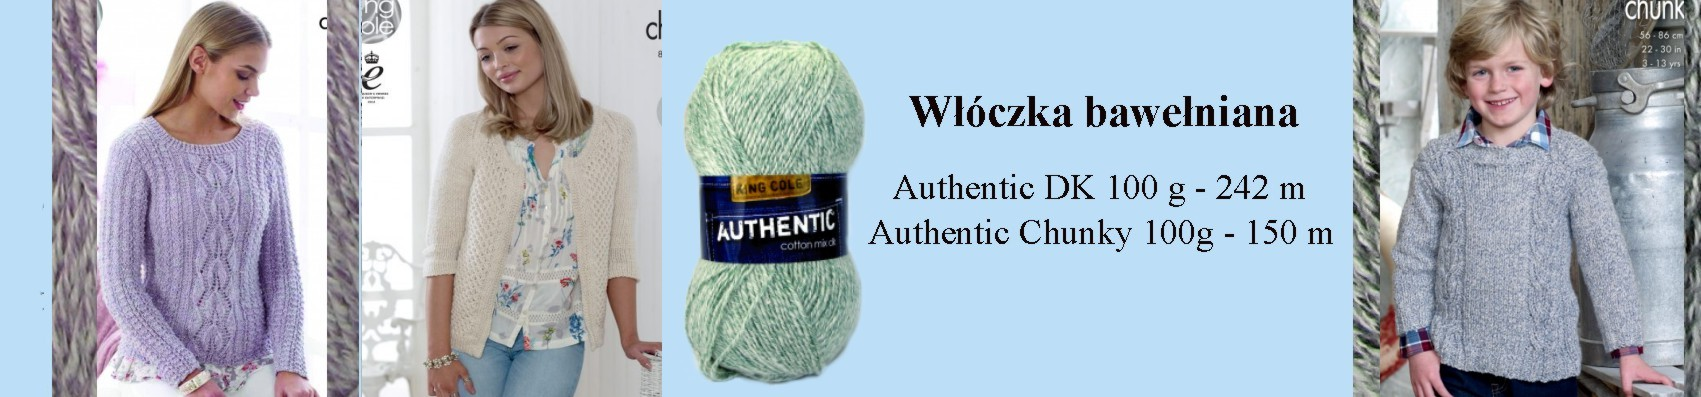 wlóczka AUTHENTIC